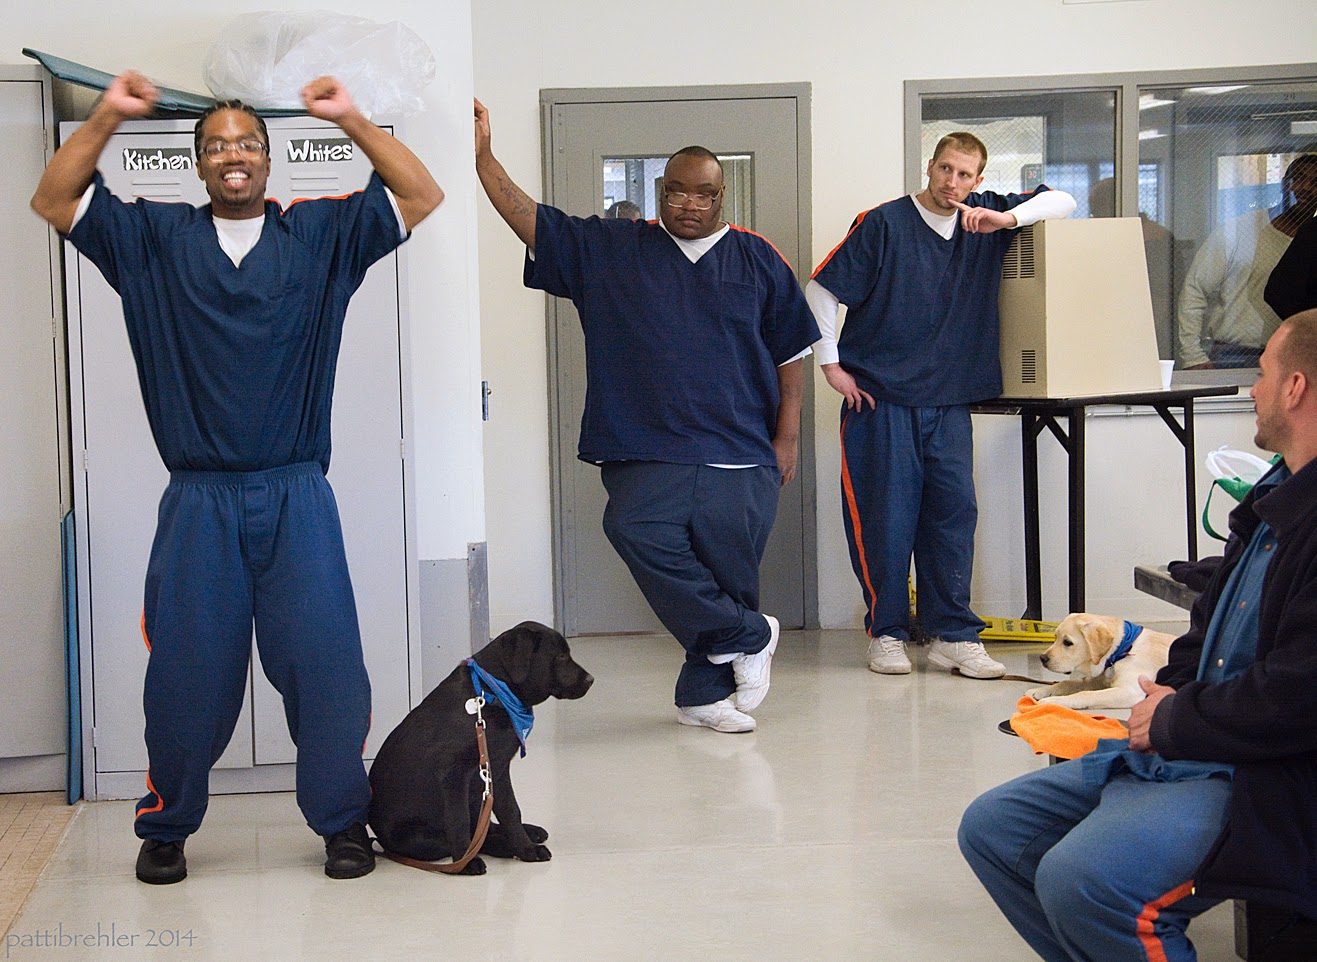 An african american man is doing jumping jacks to the left of a a young black lab puppy. The puppy is wearing a blue bandana and his leather leash is draped to the floor. The puppy is facing away from the man and looking to the right. Two other men are standing in the background to the right. Another man is sitting on the far right side, half out of view.